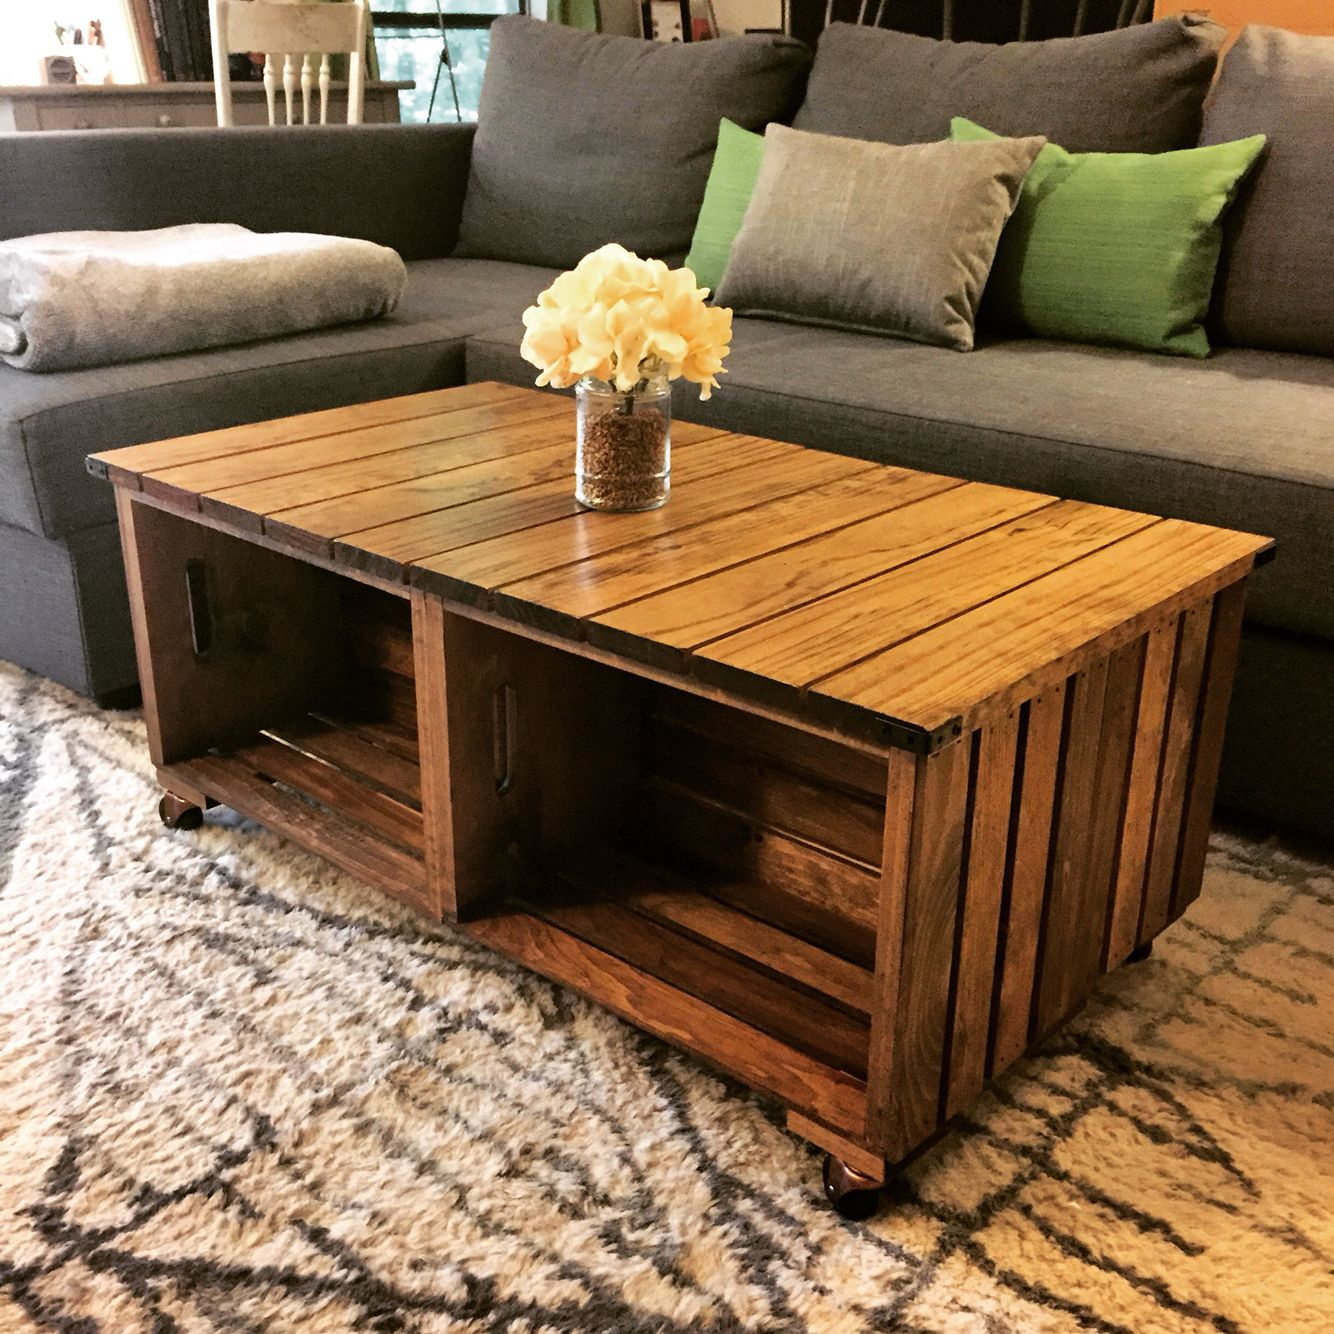 used end tables our diy wood crate coffee table how did crates from craft and some good the hardware white side glass curio cabinet corner orthopedic luxury leather dining chairs